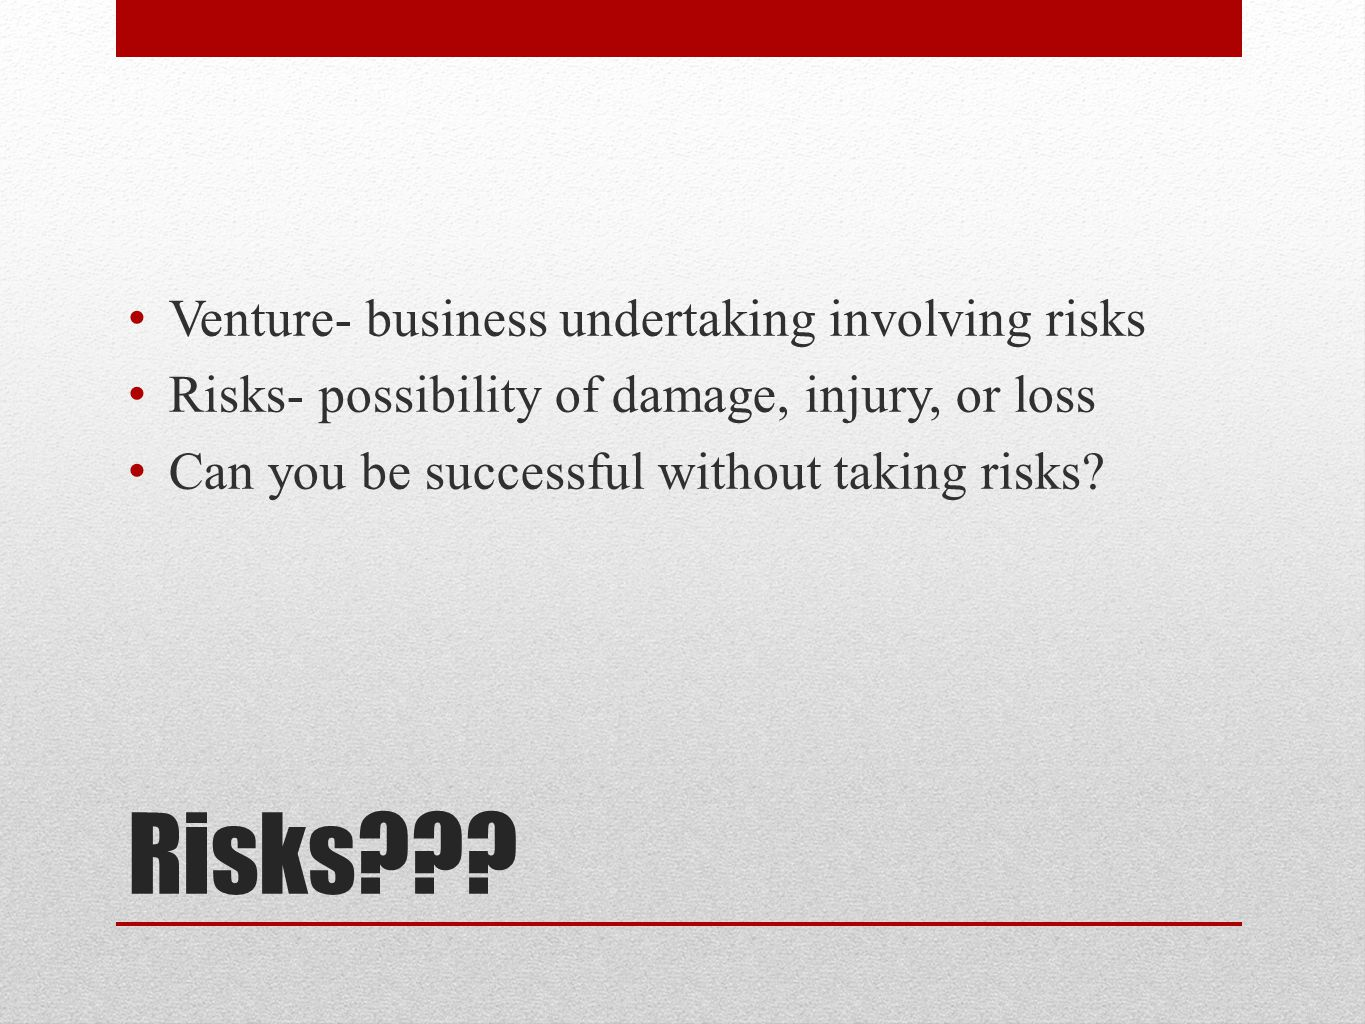 Risks Venture- business undertaking involving risks